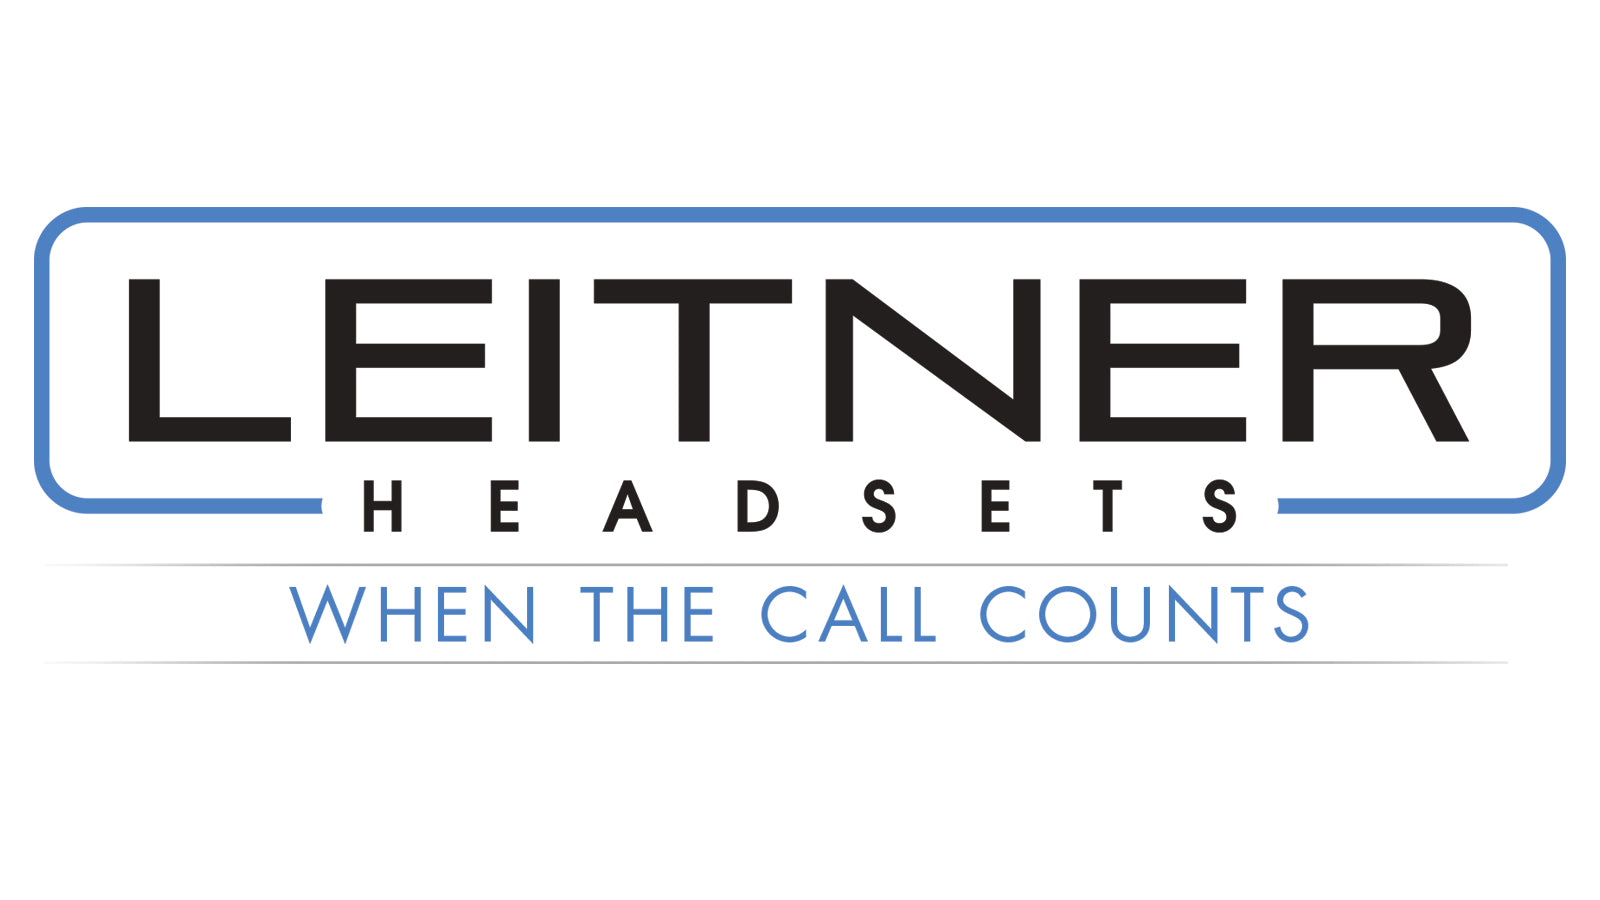 Leitner Headsets Logo - When The Call Counts